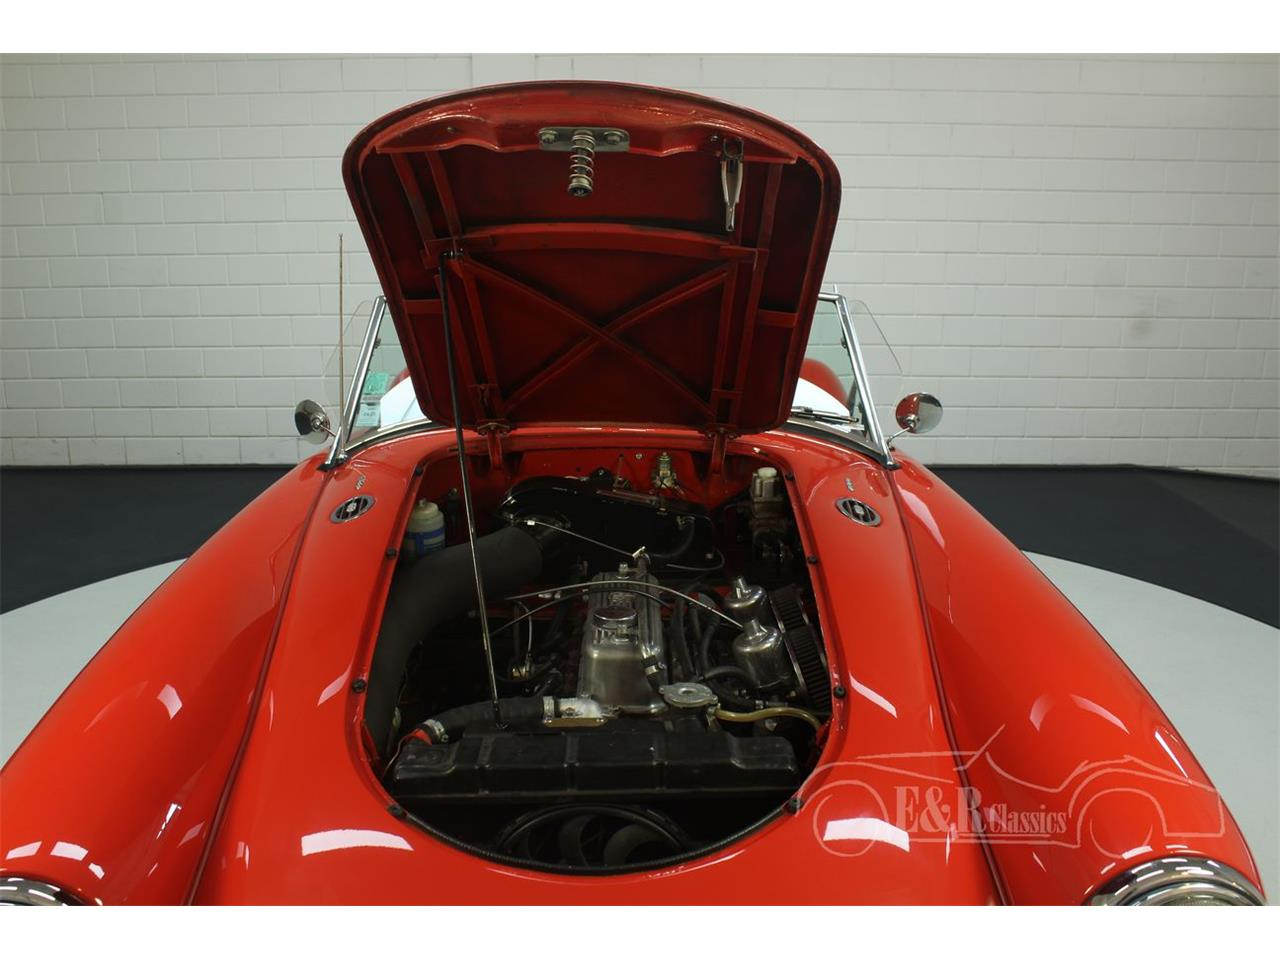 Large Picture of Classic '62 MG MGA located in noord brabant Offered by E & R Classics - Q2W8